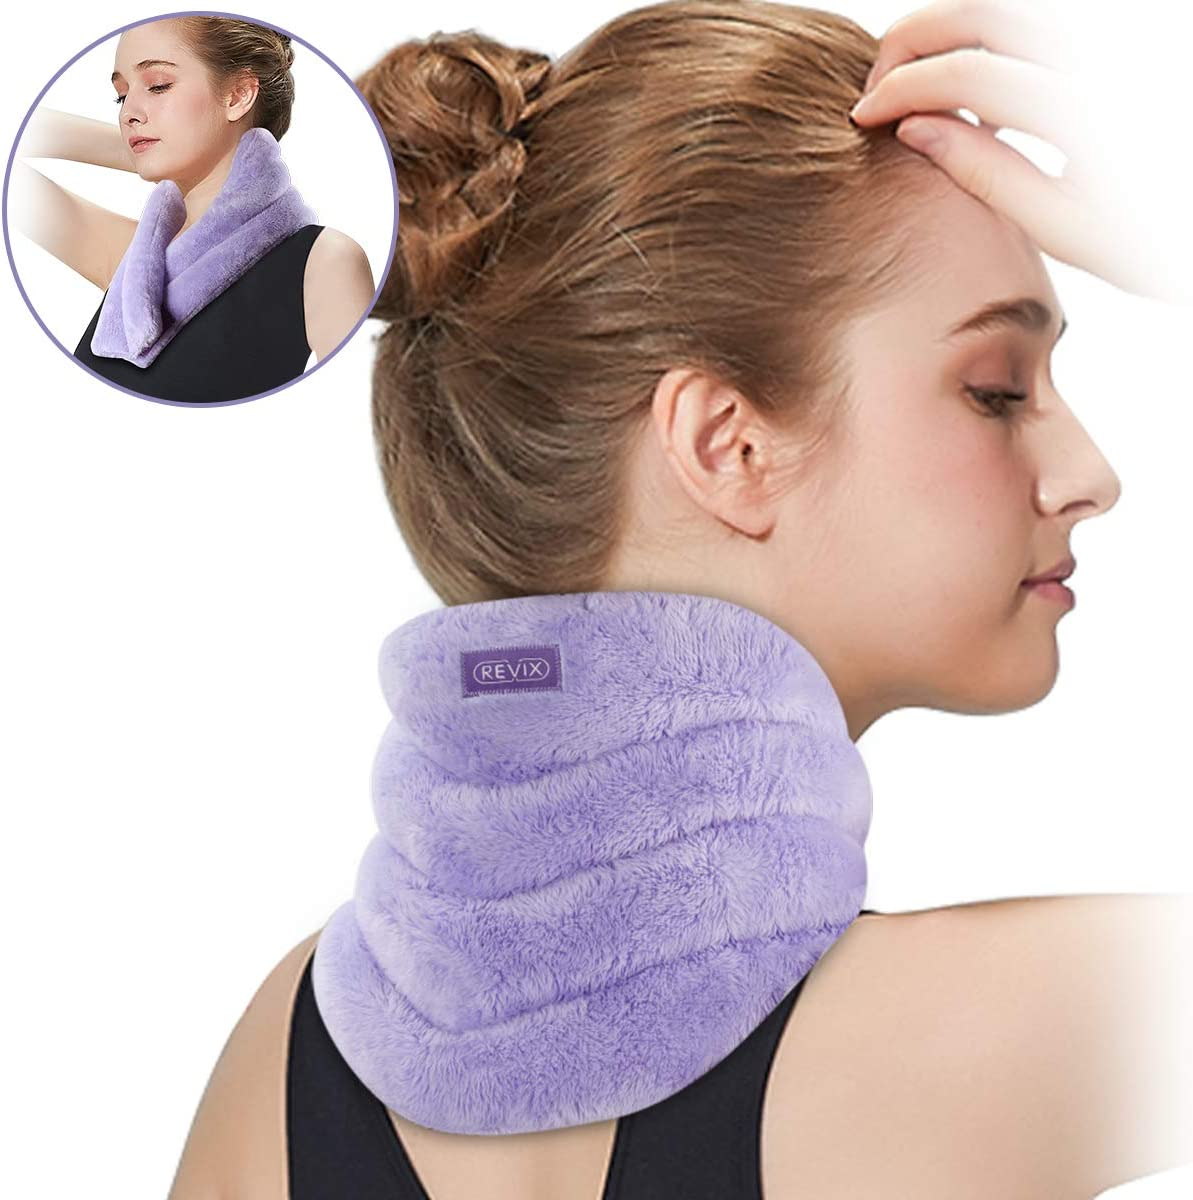 REVIX Neck Heating Pad Microwavable Heated Neck Wrap with Moist Heat for Stress Pain Relief, Microwave Neck Warmer for Woman, Unscented Hot or Cold Pack